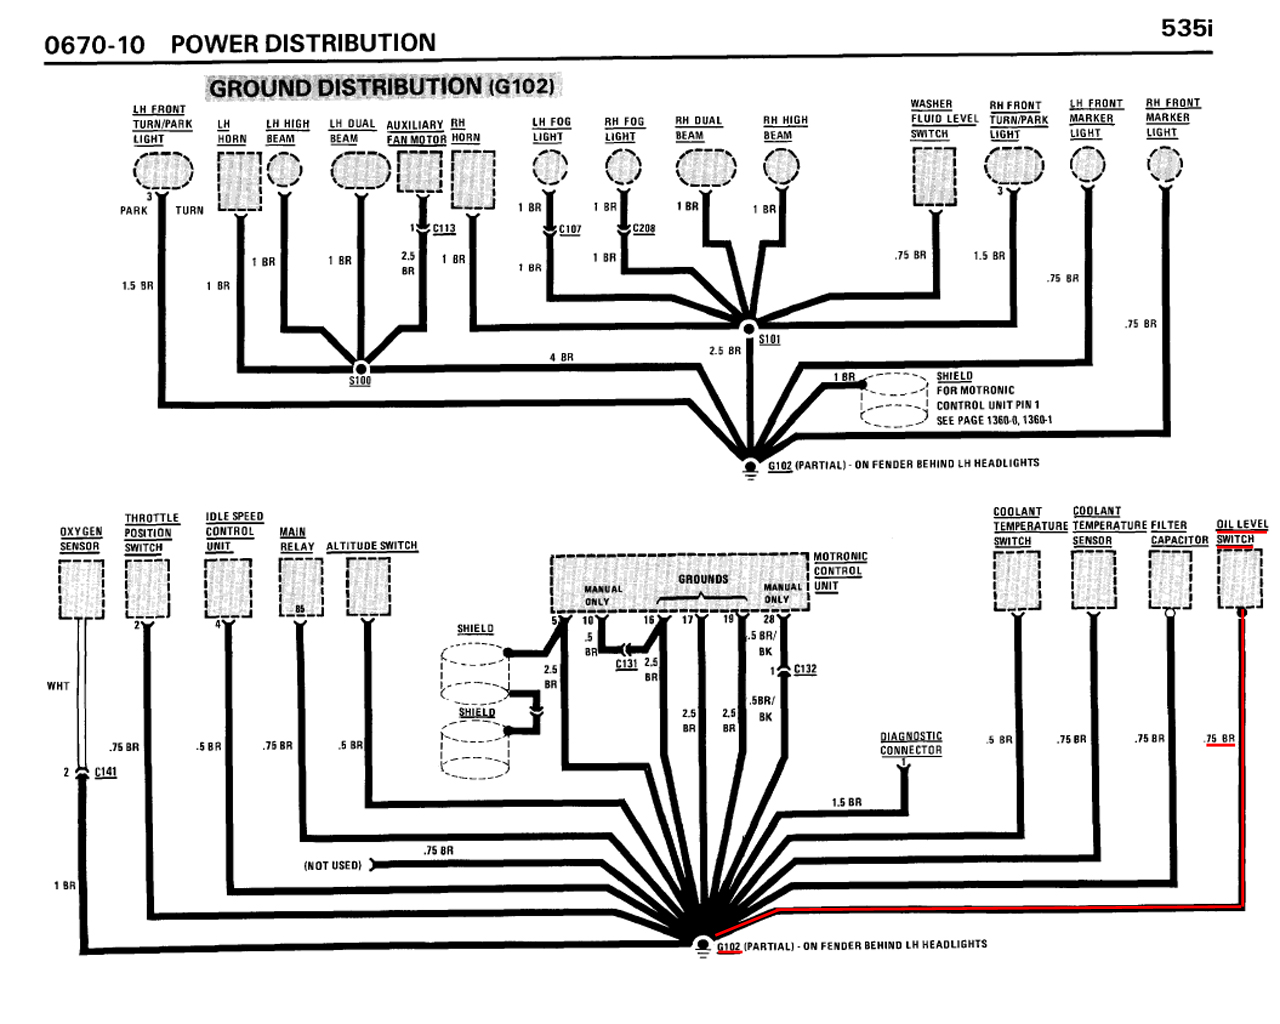 M30 B34 B35 Oil Level Sensor Wire Diagram Help Mye28